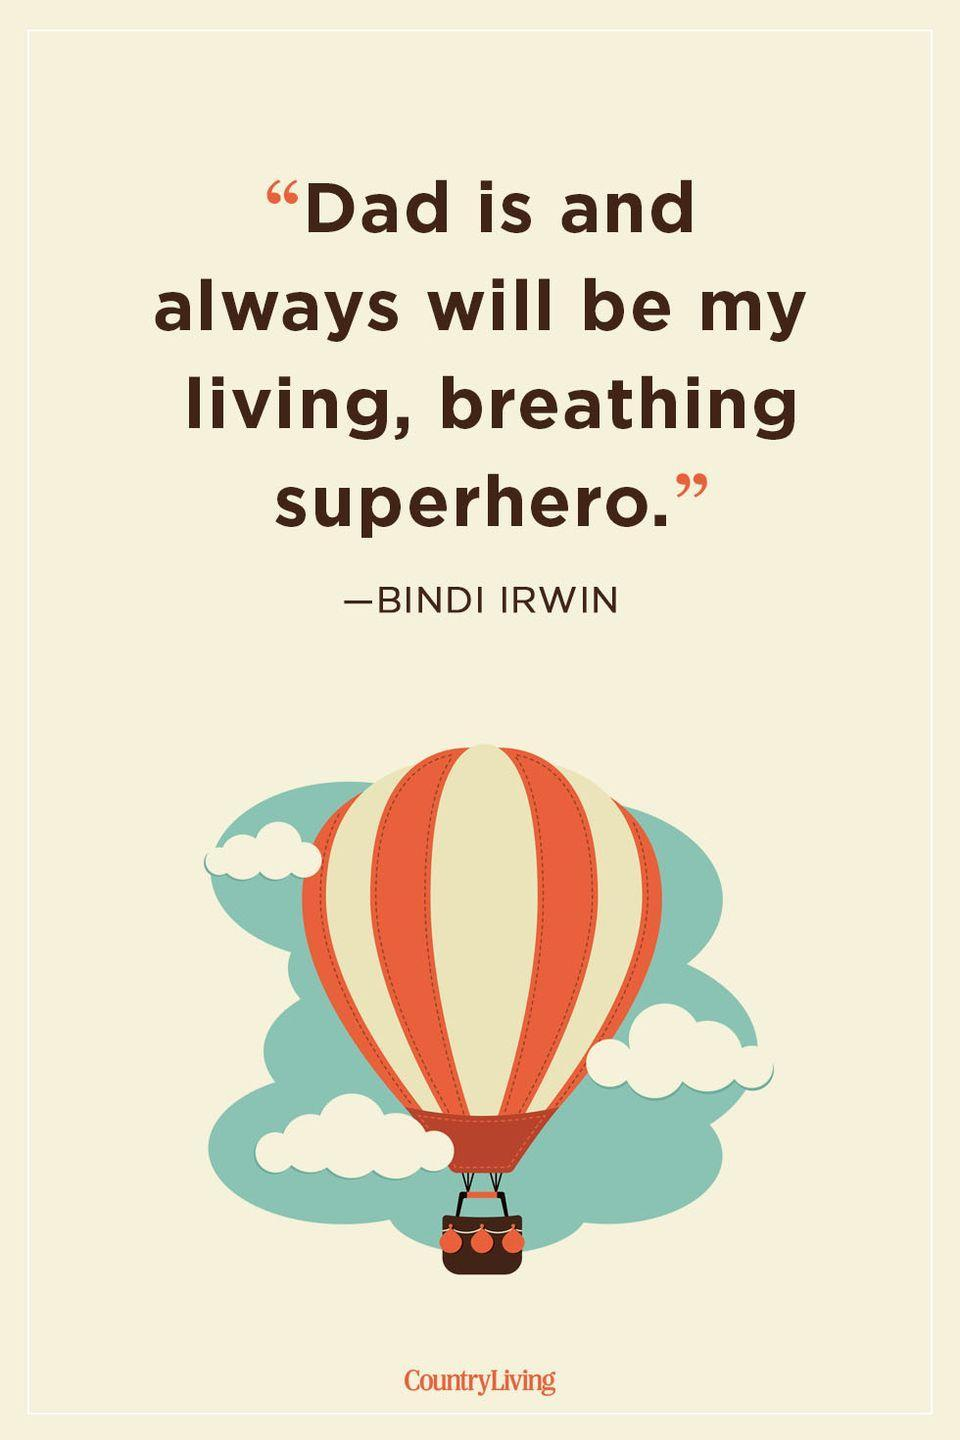 "<p>""Dad is and always will be my living, breathing superhero.""</p>"